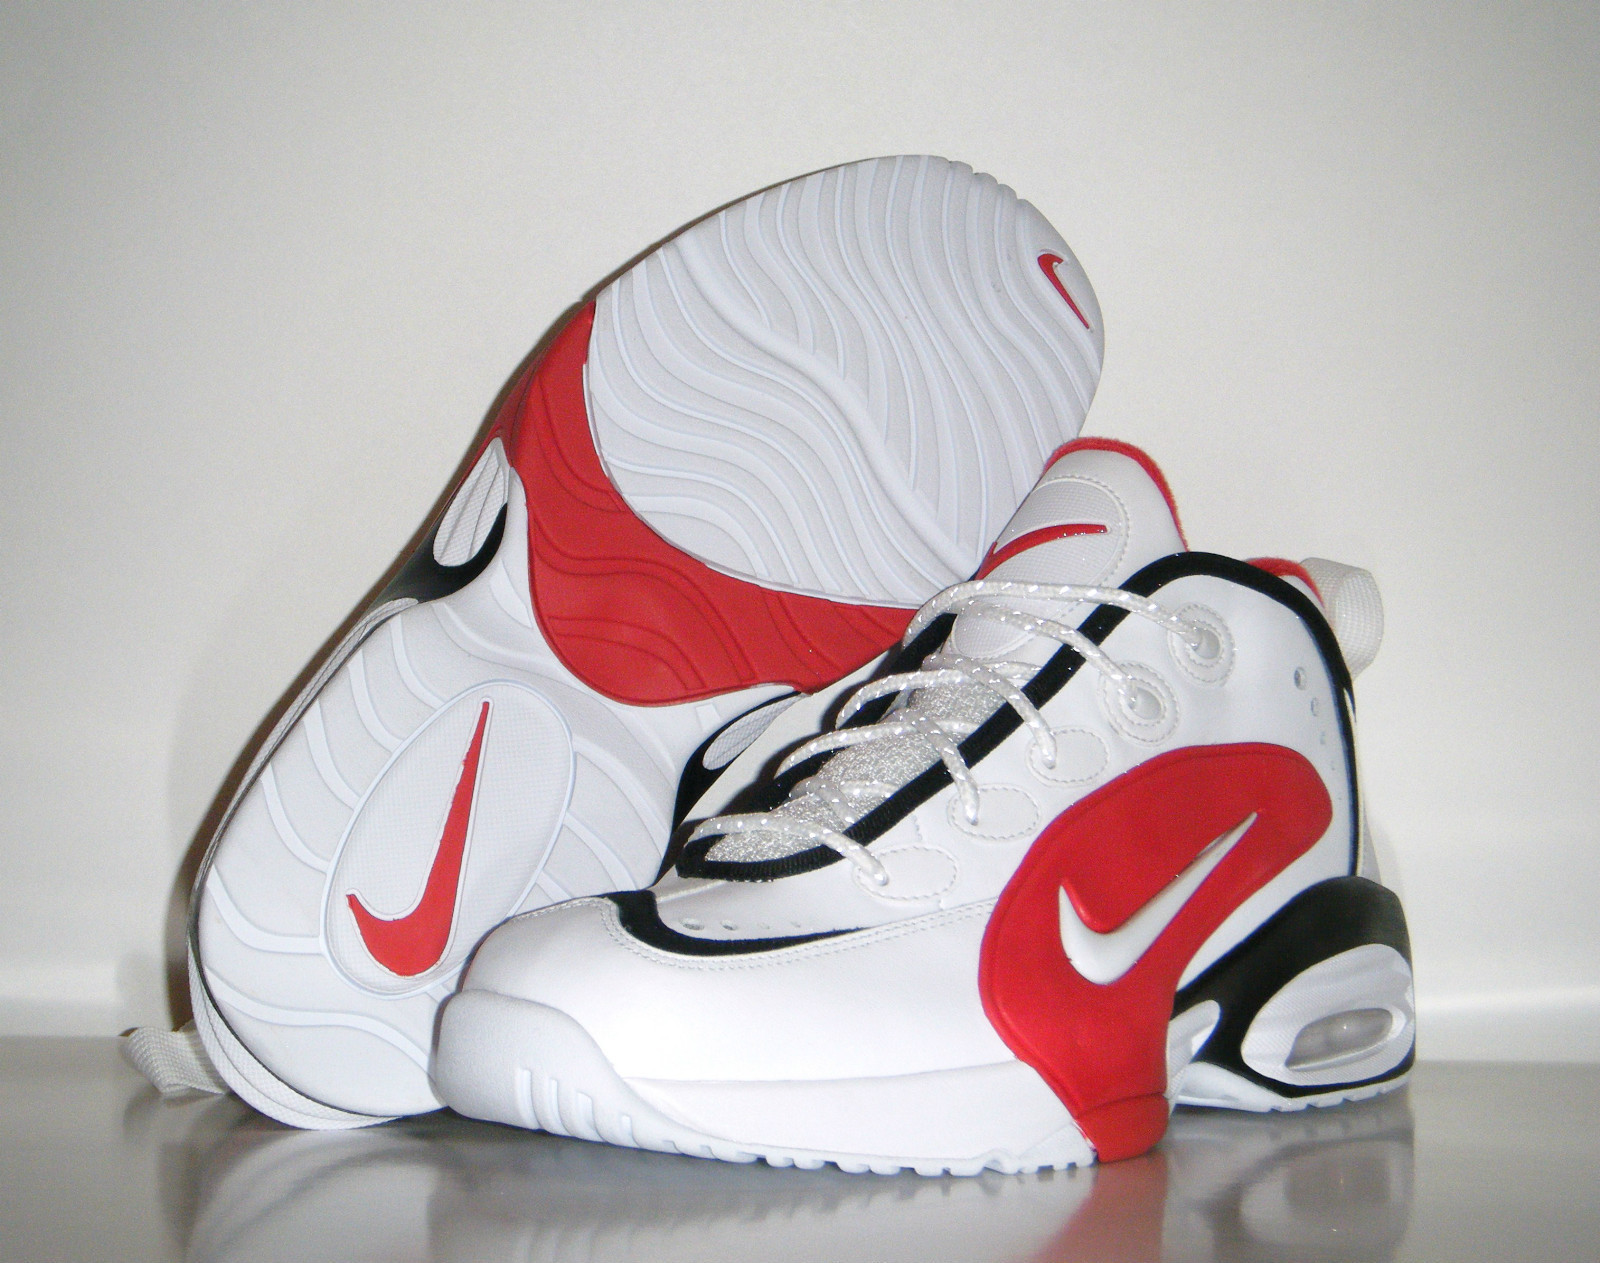 Nike Air Way Up 'White/White-Black-University Red' 2013 Sample